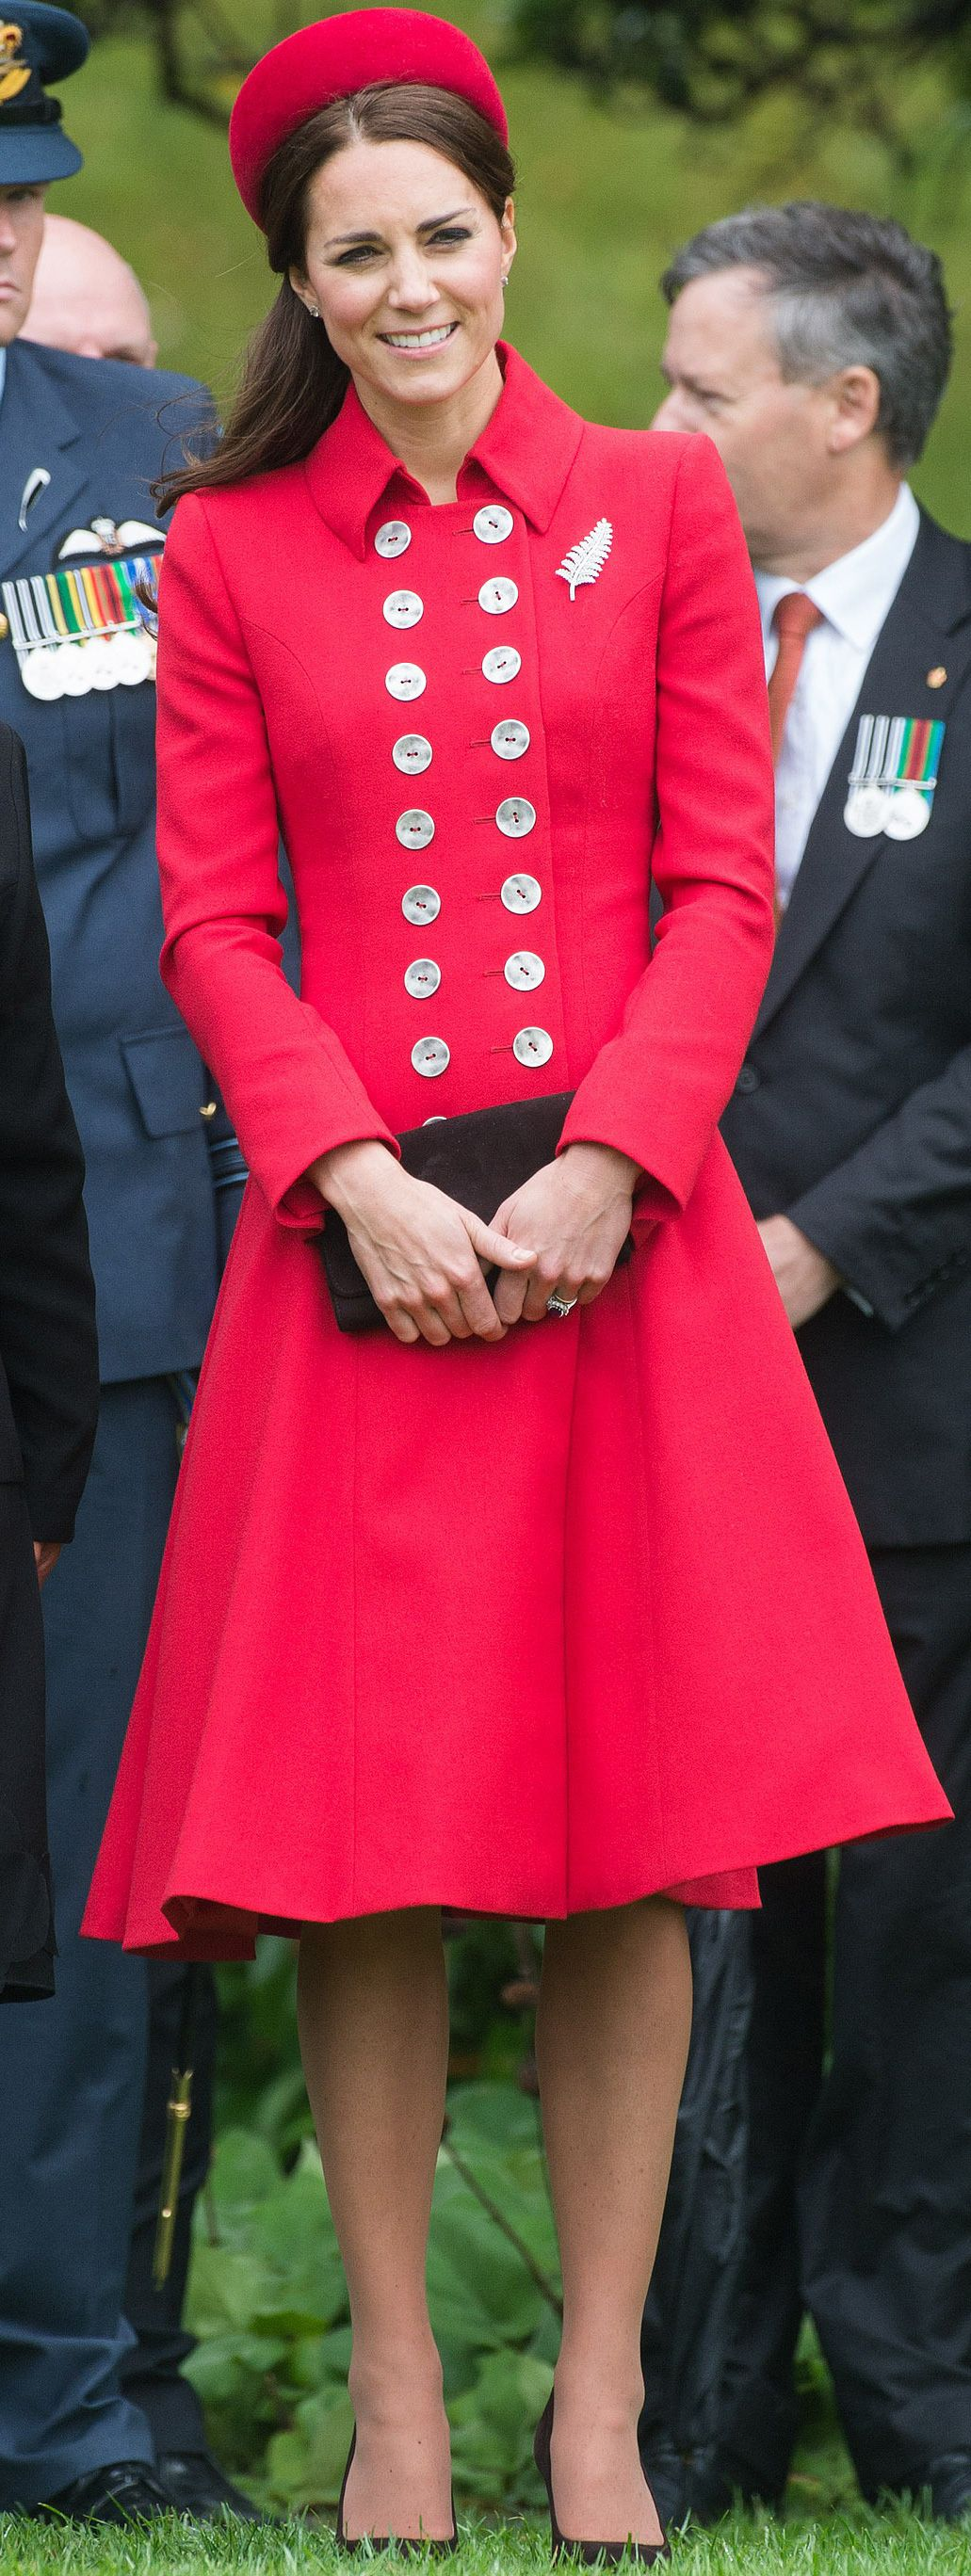 Kate Middleton 39 S Style Came Saw And Conquered The Land Down Under Cambridge Pillbox Hat And